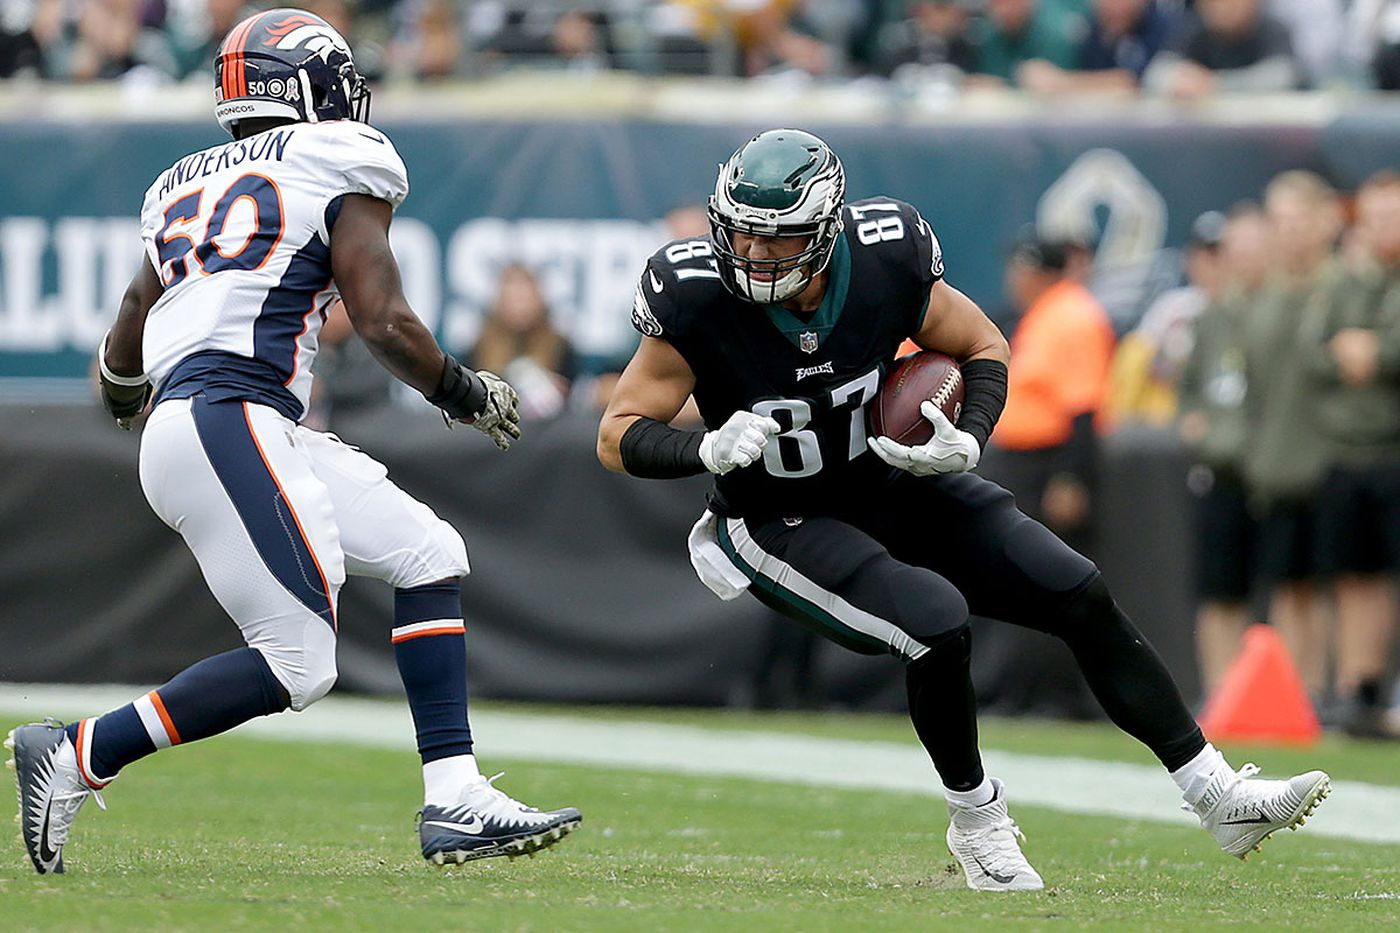 923fd81a9b7 Eagles' Brent Celek (right) catches a pass as the Broncos' Zaire Anderson